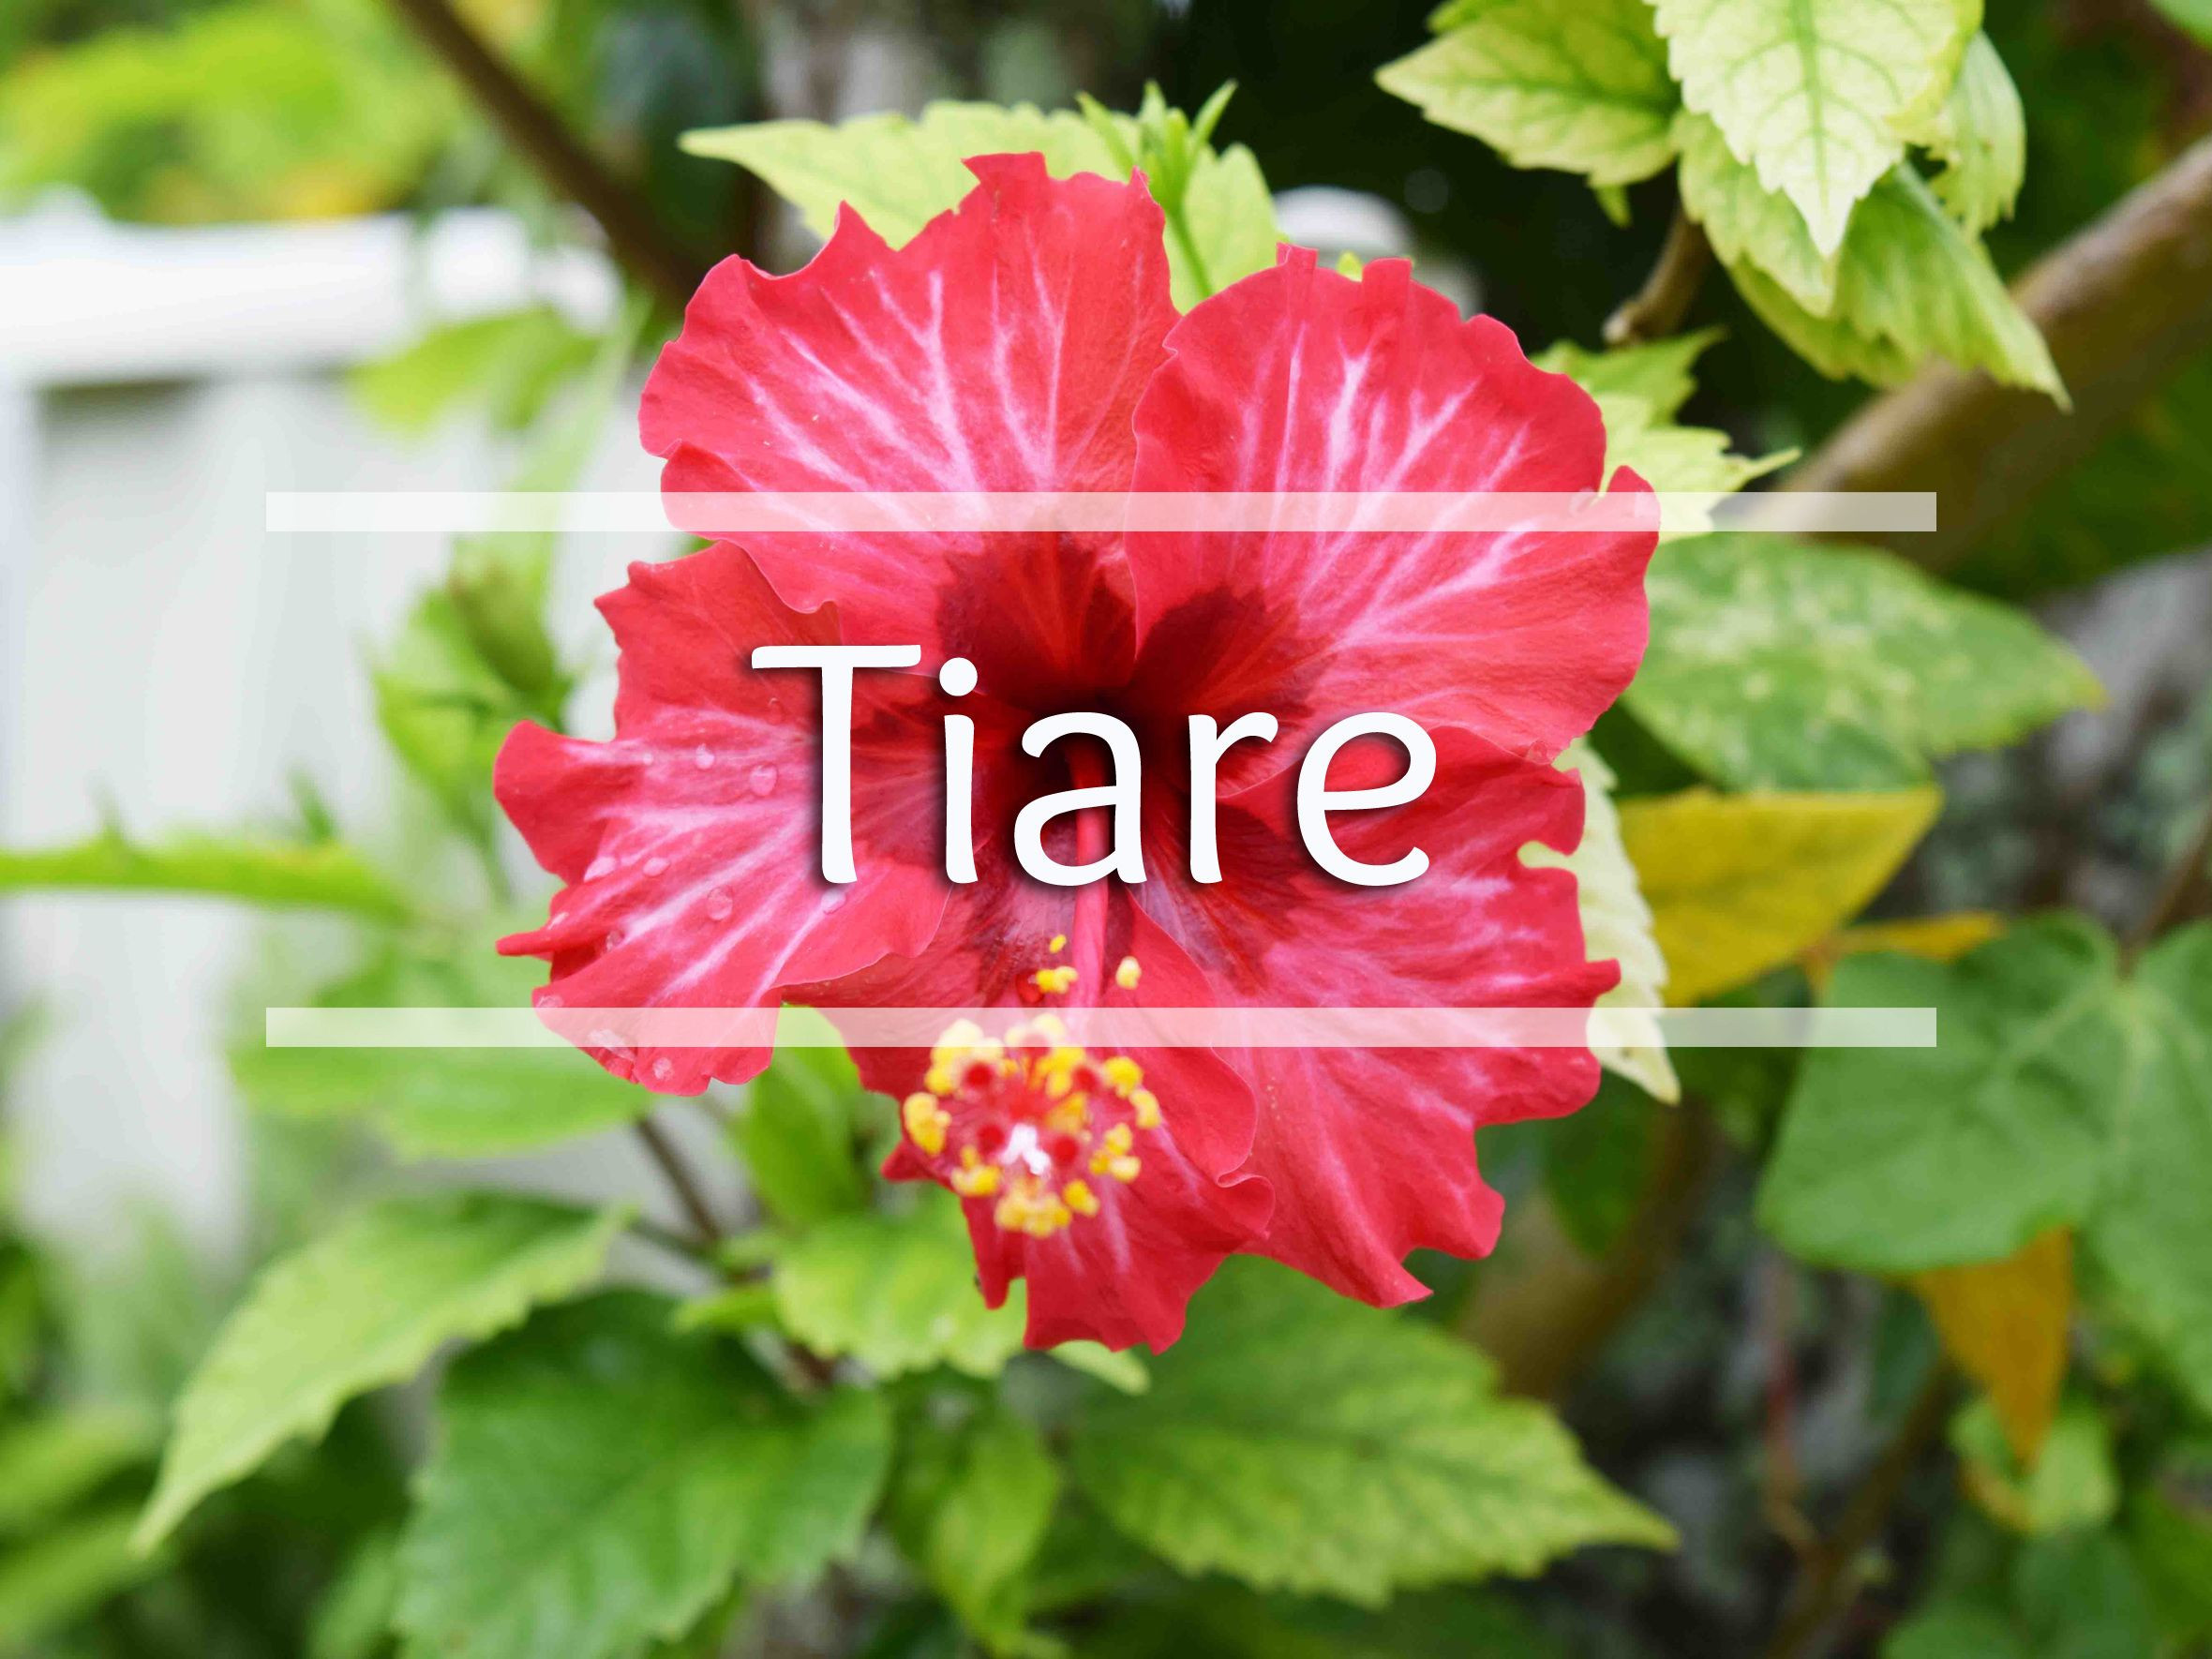 Tiare is the Cook Island Maori word for Flower Pictured above is a gorgeous Hibiscus flower in full bloom on Rarotonga